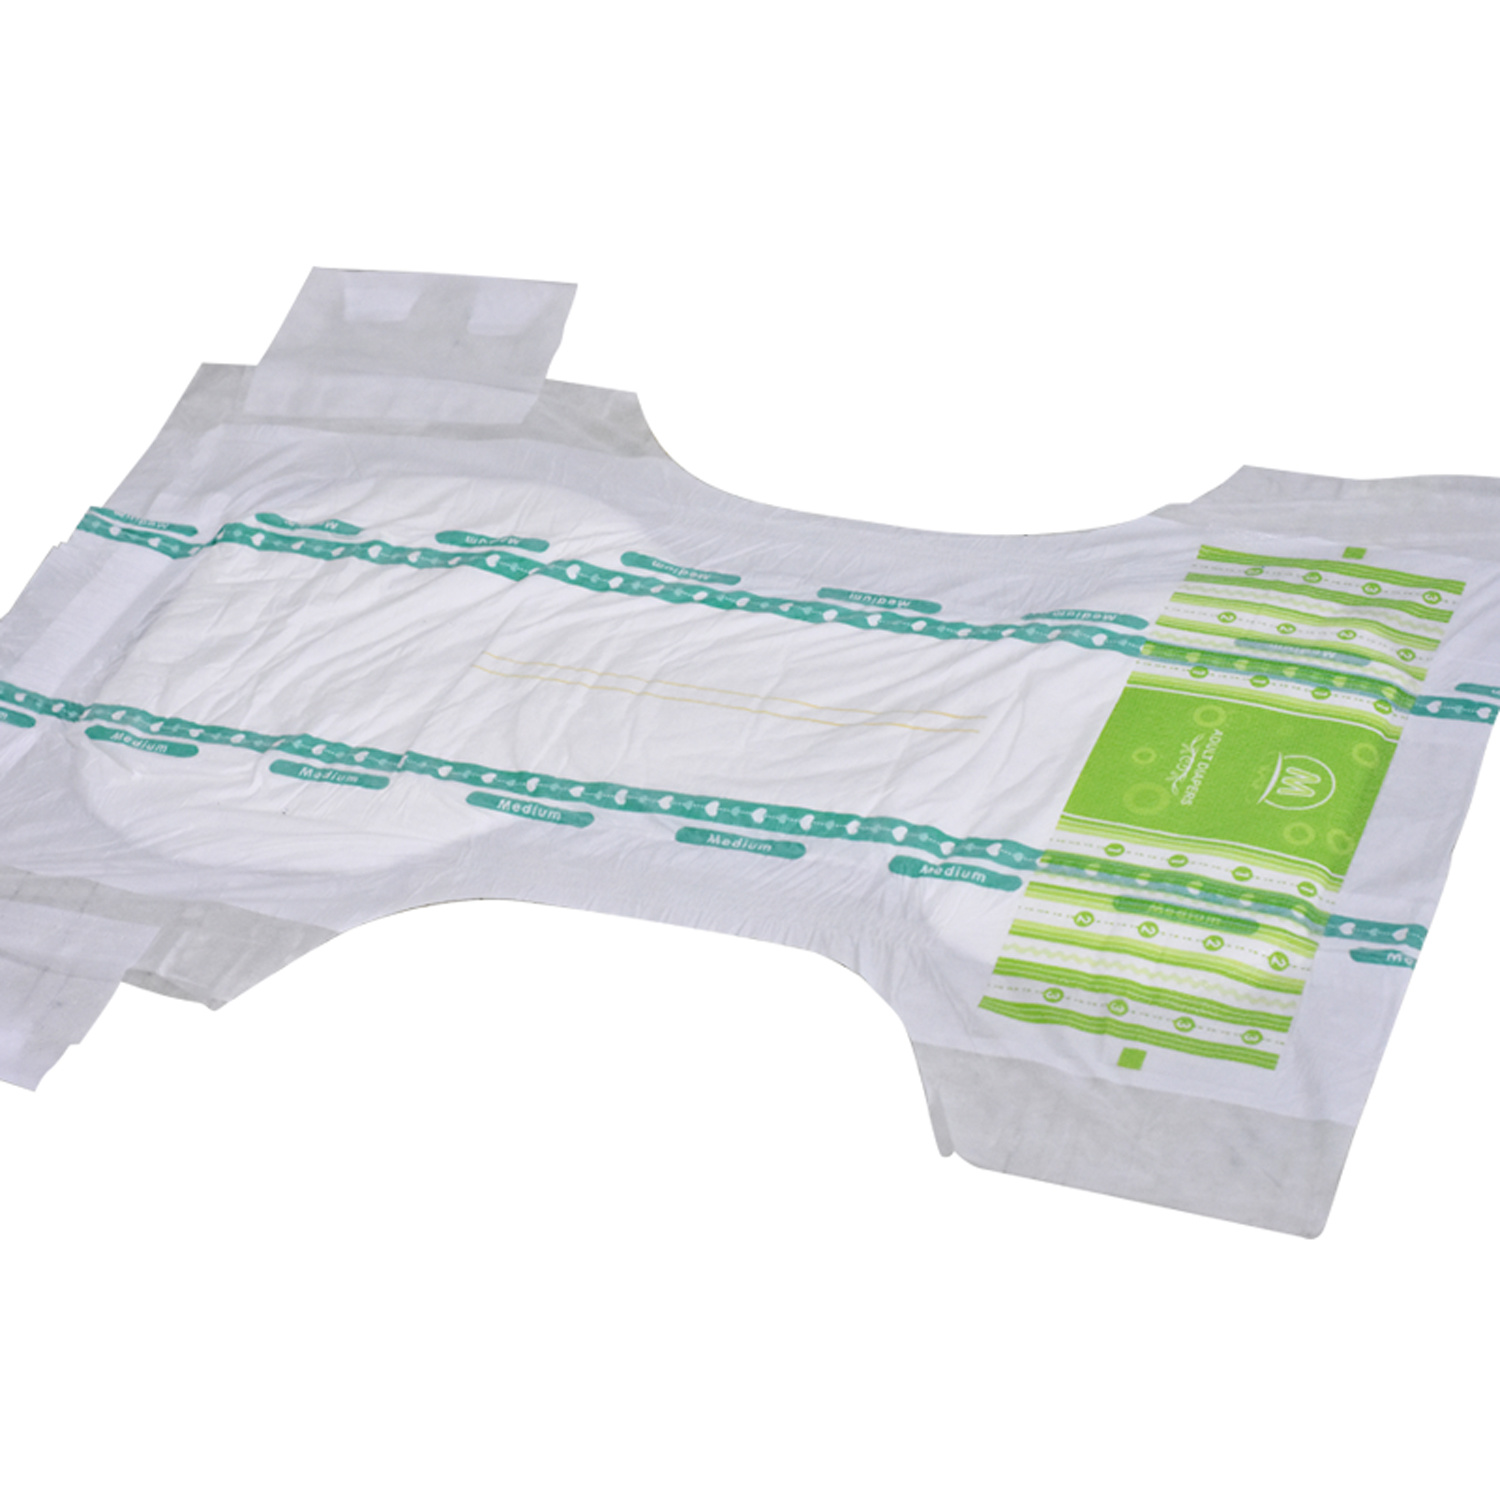 Disposable Magic Tape Hold Adult Diapers OEM Manufacturer Breathable Cloth-Like Back Sheet